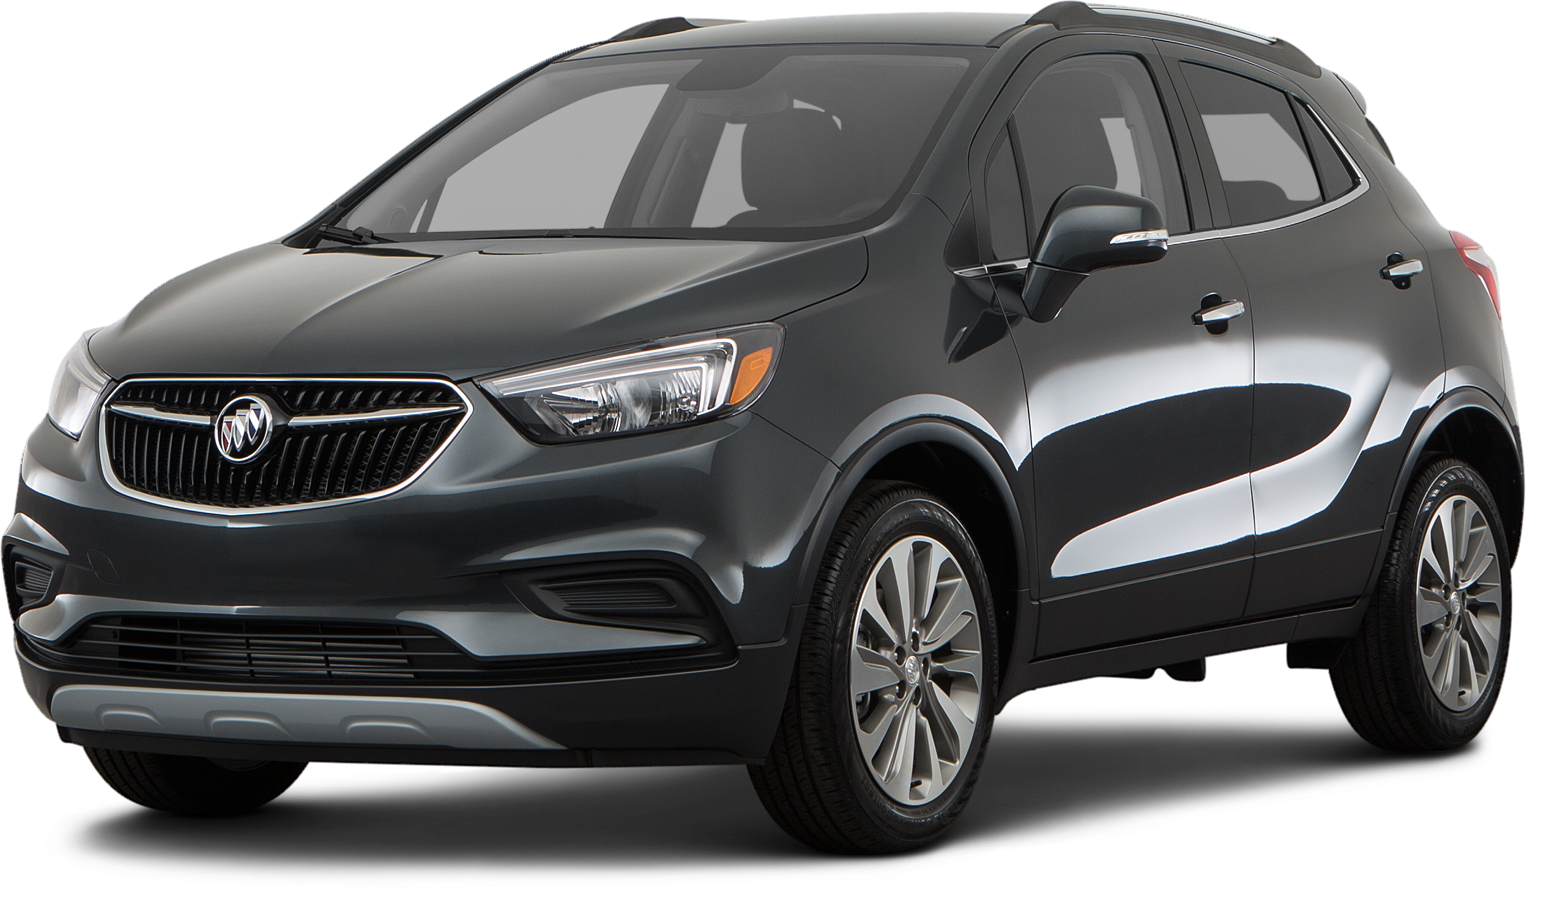 Gary Lang Auto >> 2019 Buick Encore Incentives, Specials & Offers in McHenry IL